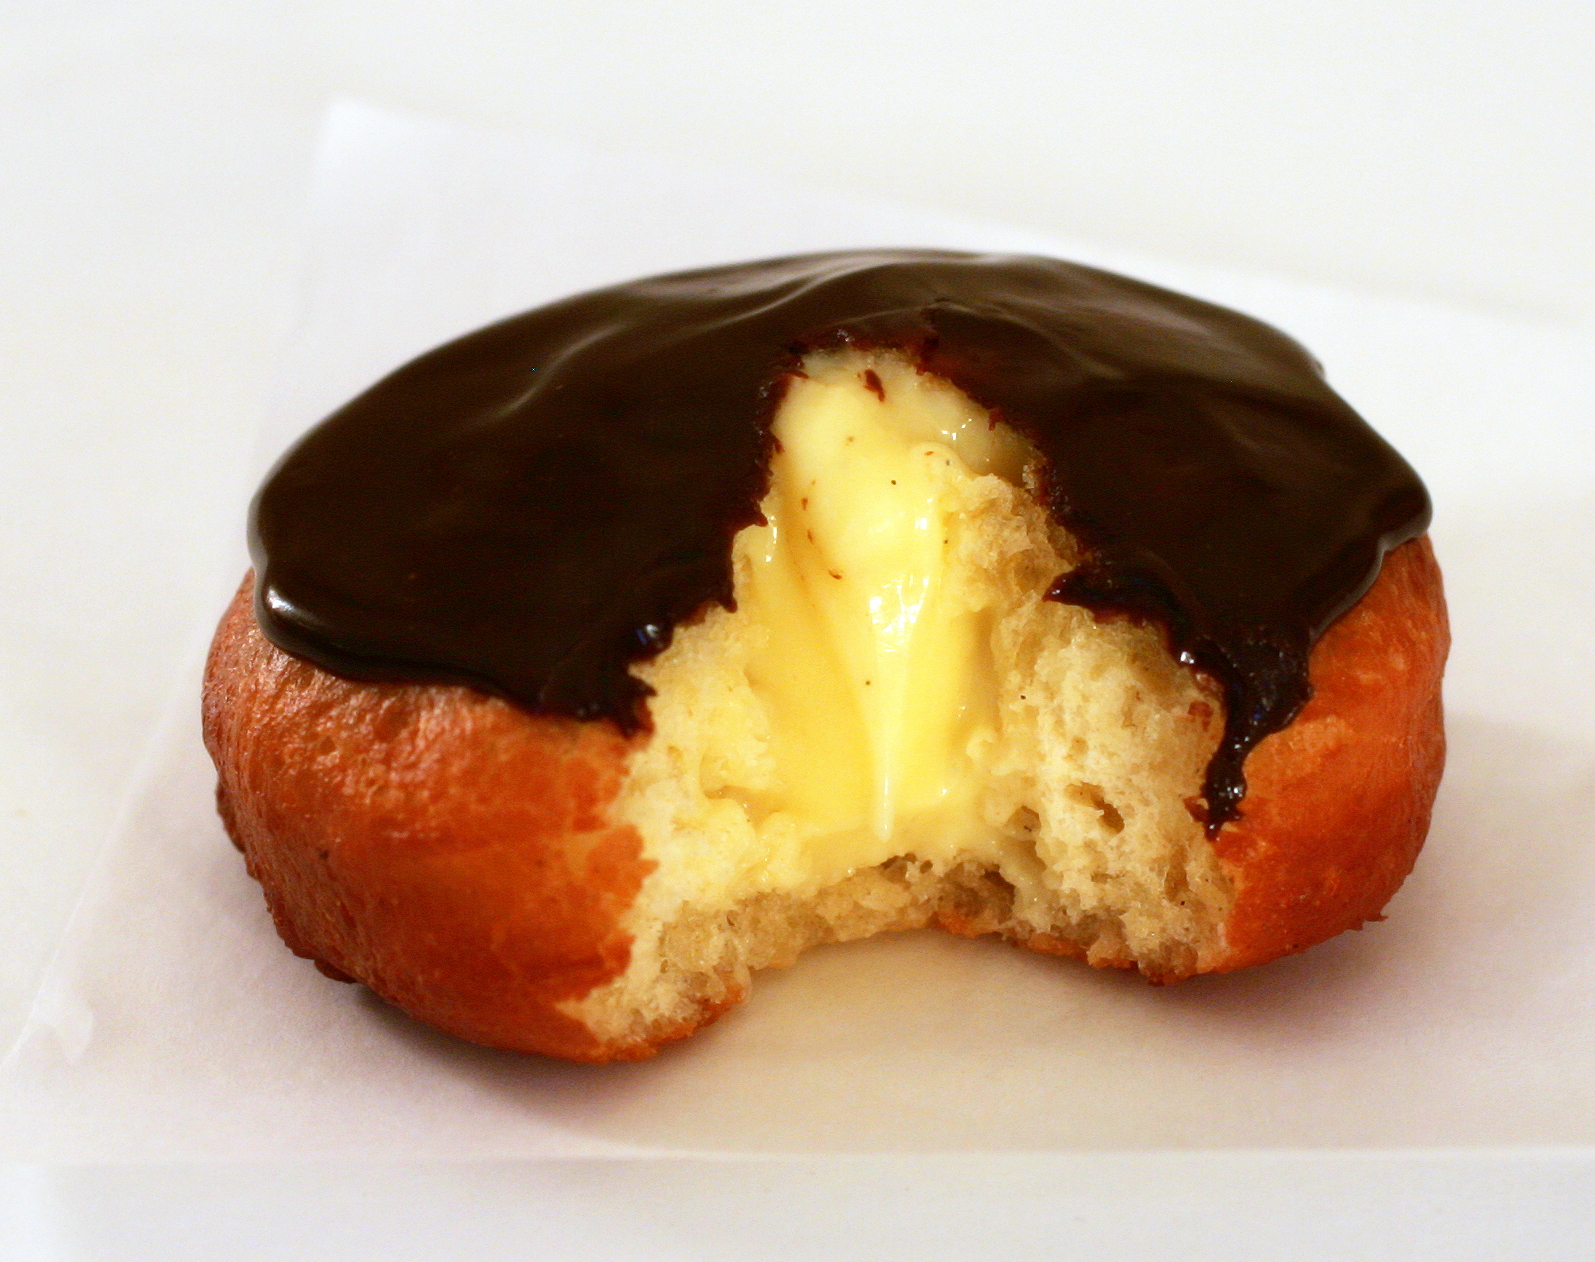 Tish Boyle Sweet Dreams: Boston Cream Doughnuts